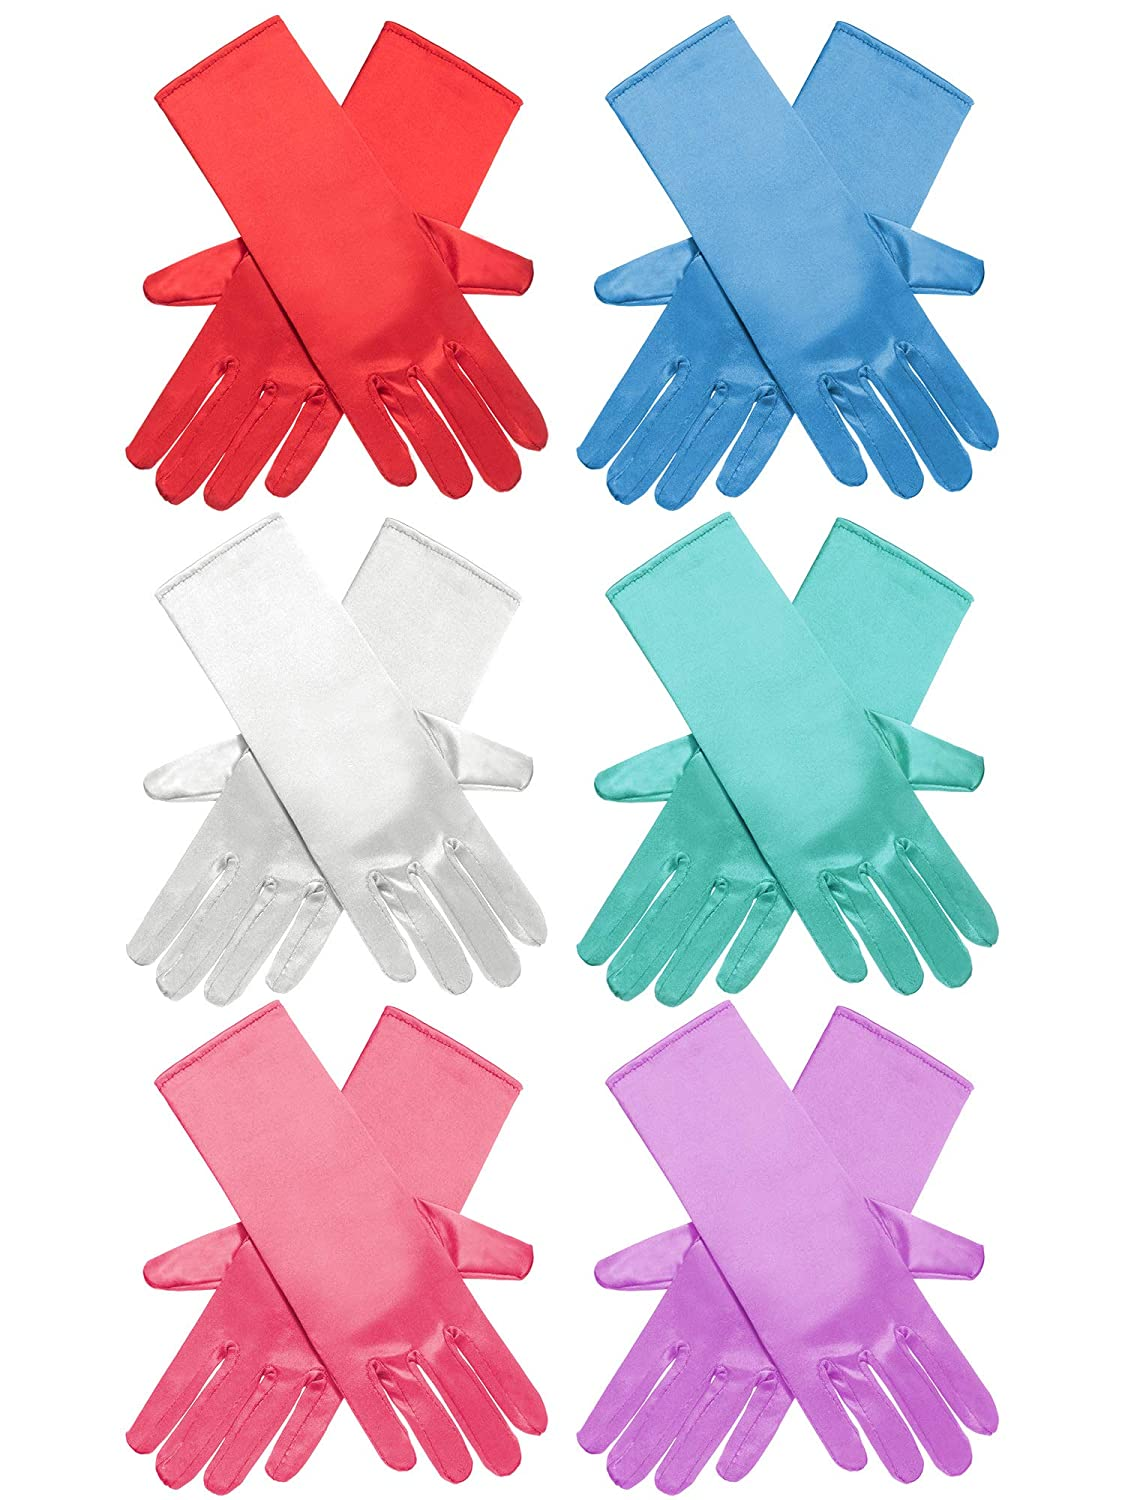 a8c0663cc0 Amazon.com  Zhanmai 6 Pairs Princess Dress Up Long Gloves Shiny Silky Satin  Gloves for Kids Party